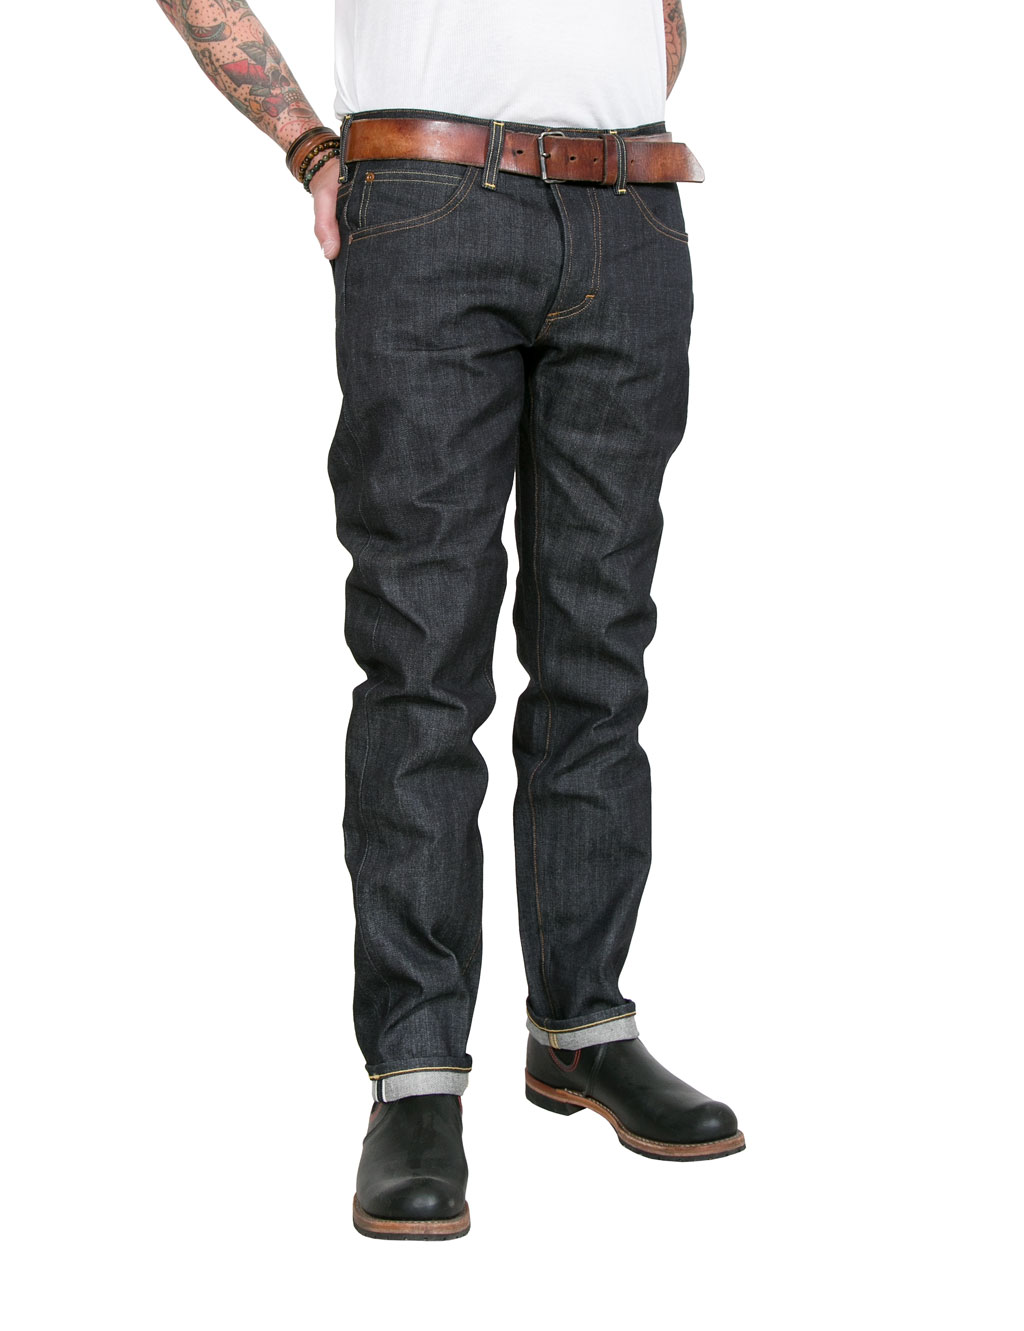 Lee - 101 S Regular Fit Raw Jeans Dry Selvage Denim - 13 3/4oz - Blue